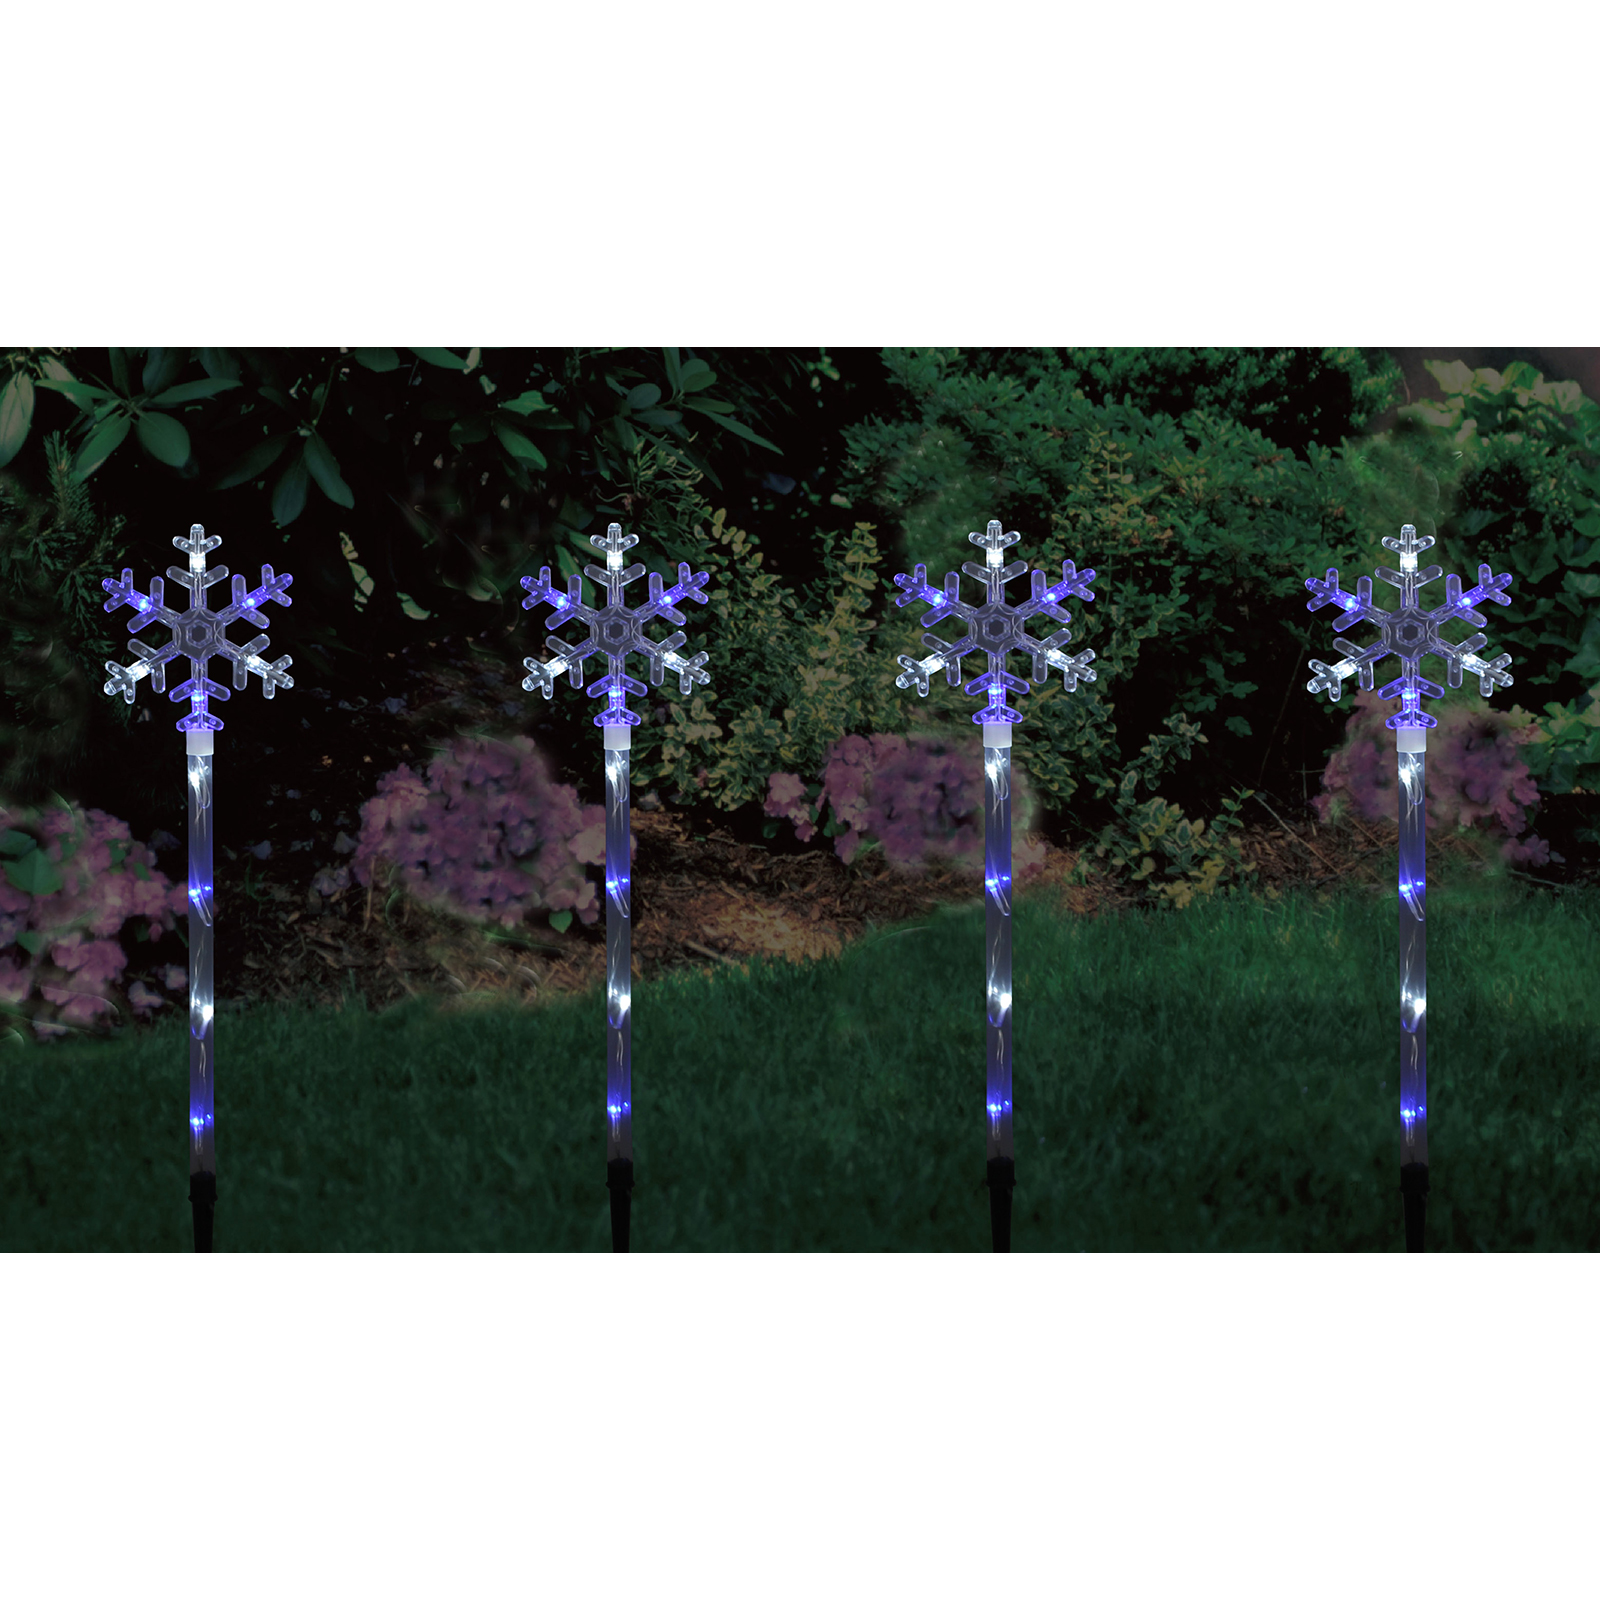 4 linked light up blue white snowflake outdoor garden path for Outdoor light up ornaments